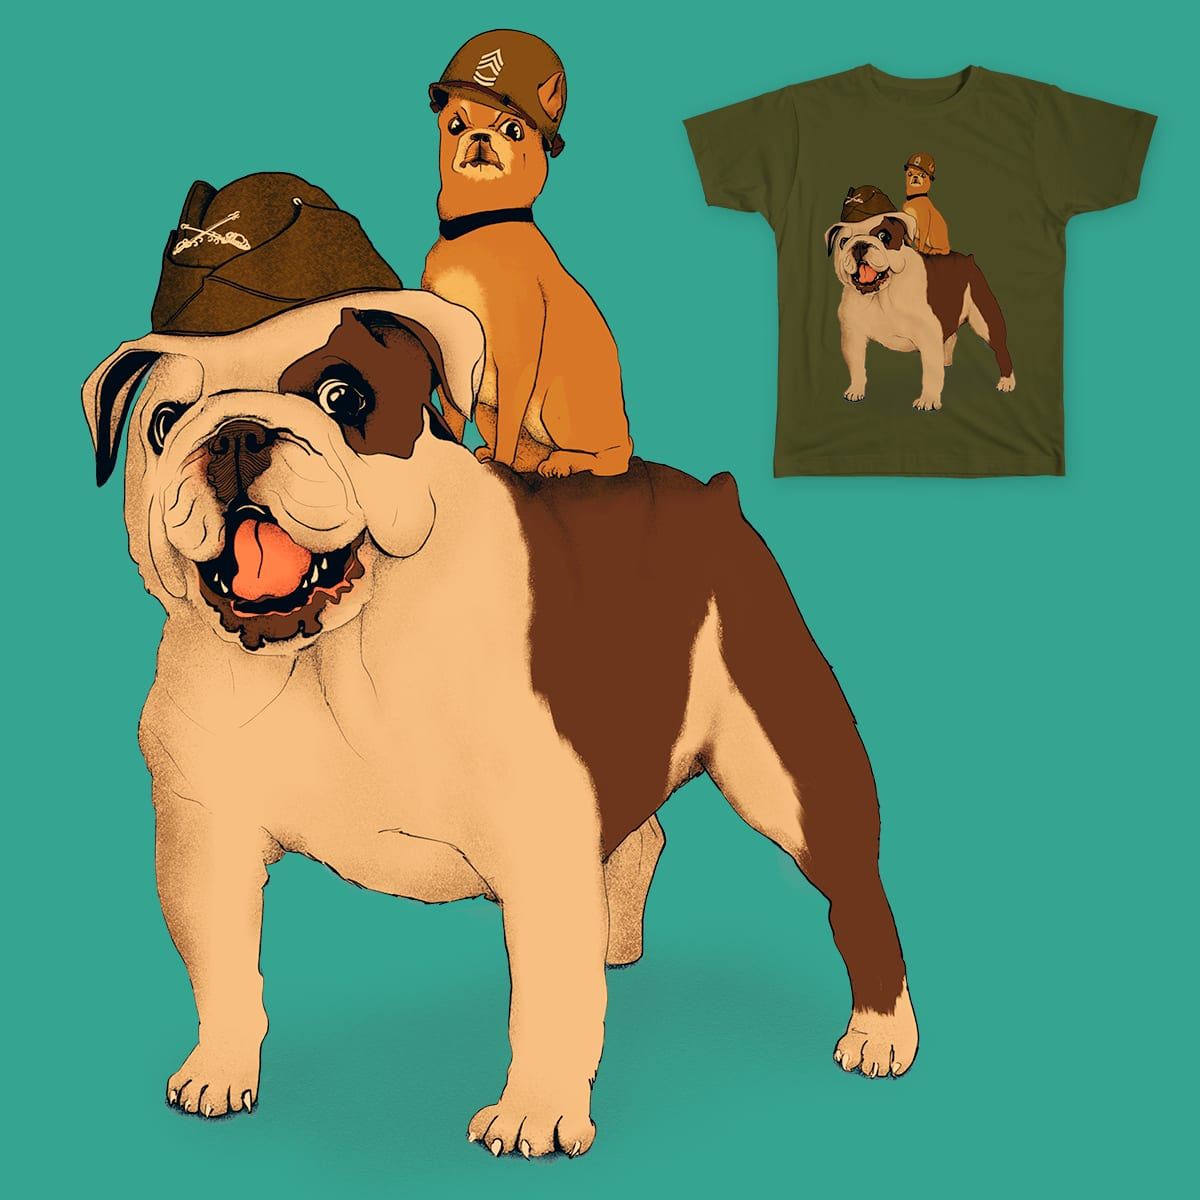 At Dawn... by Lopesco on Threadless